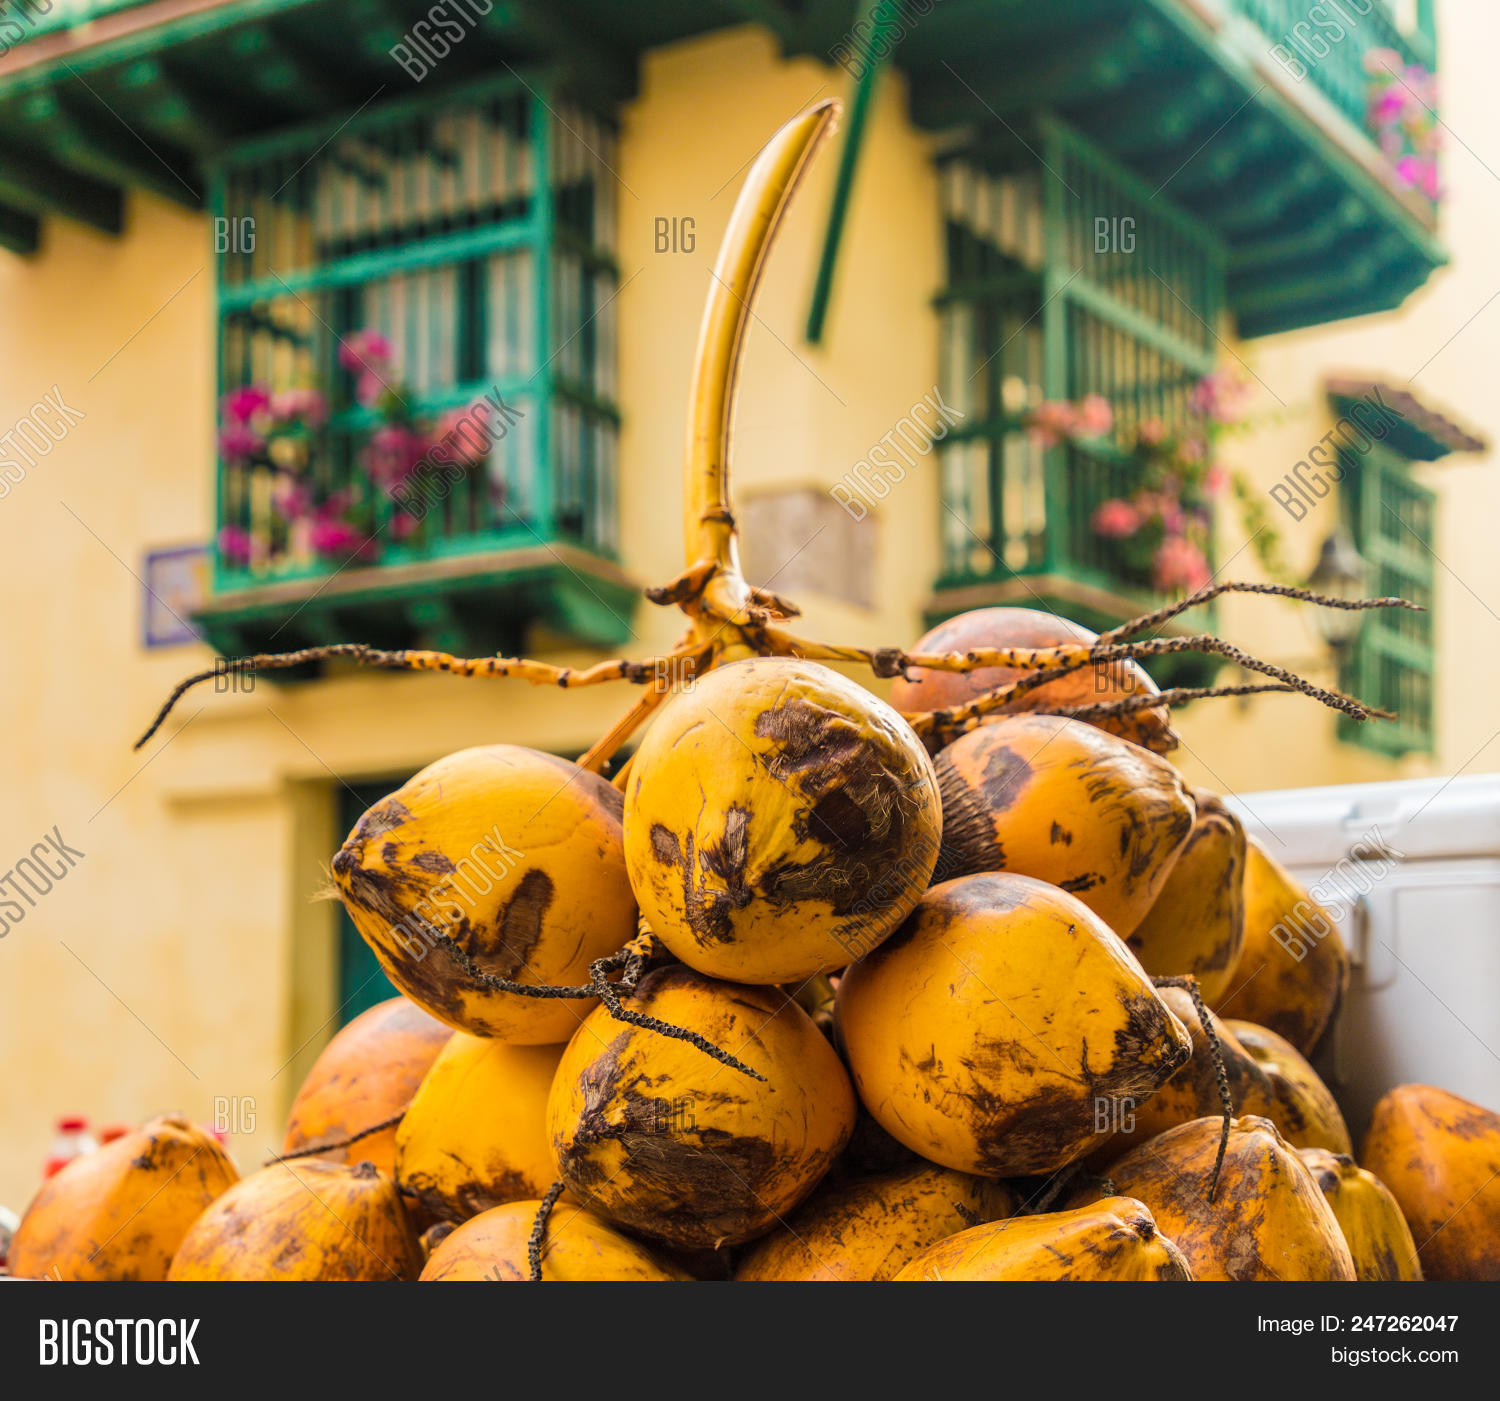 Cartagena Colombia Image Photo Free Trial Bigstock